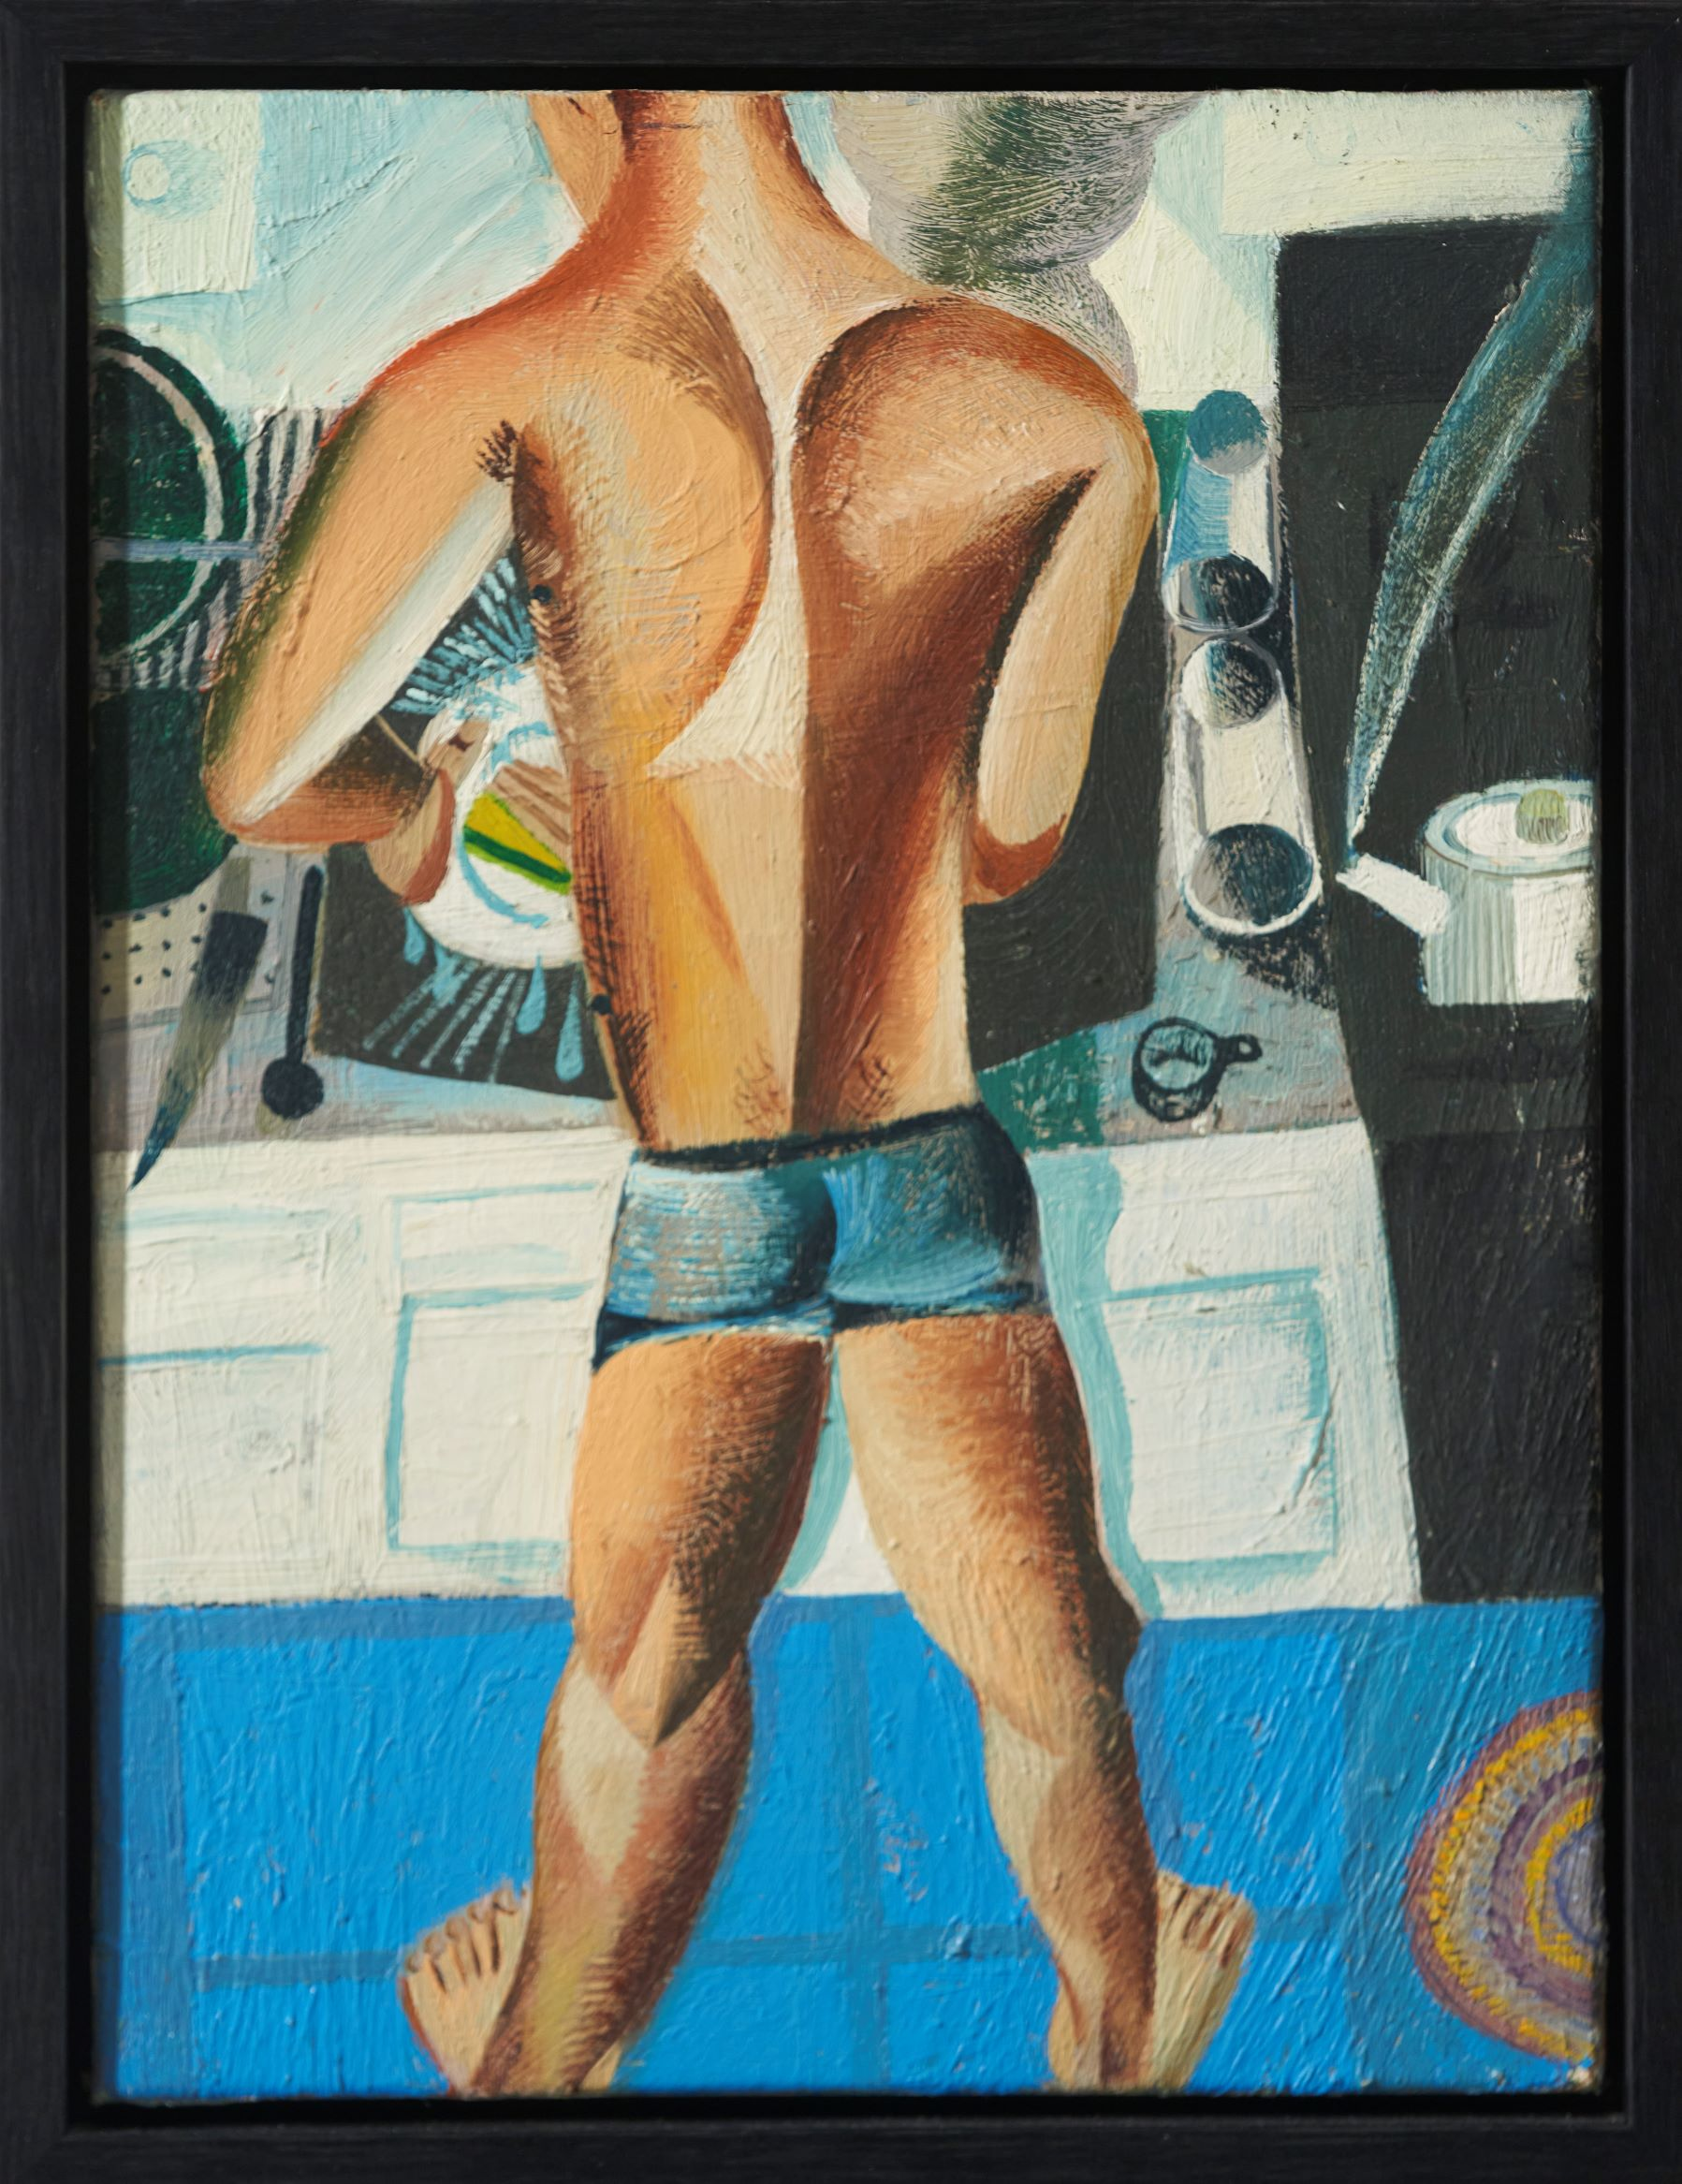 Louis Fratino, Tom Doing the Dishes, 2020, Oil on canvas, 12 x 9 Inches, Framed: 13 1/8 x 10 1/8 x 1 1/2 inches, Courtesy the artist and Ciaccia Levi, Paris, FR